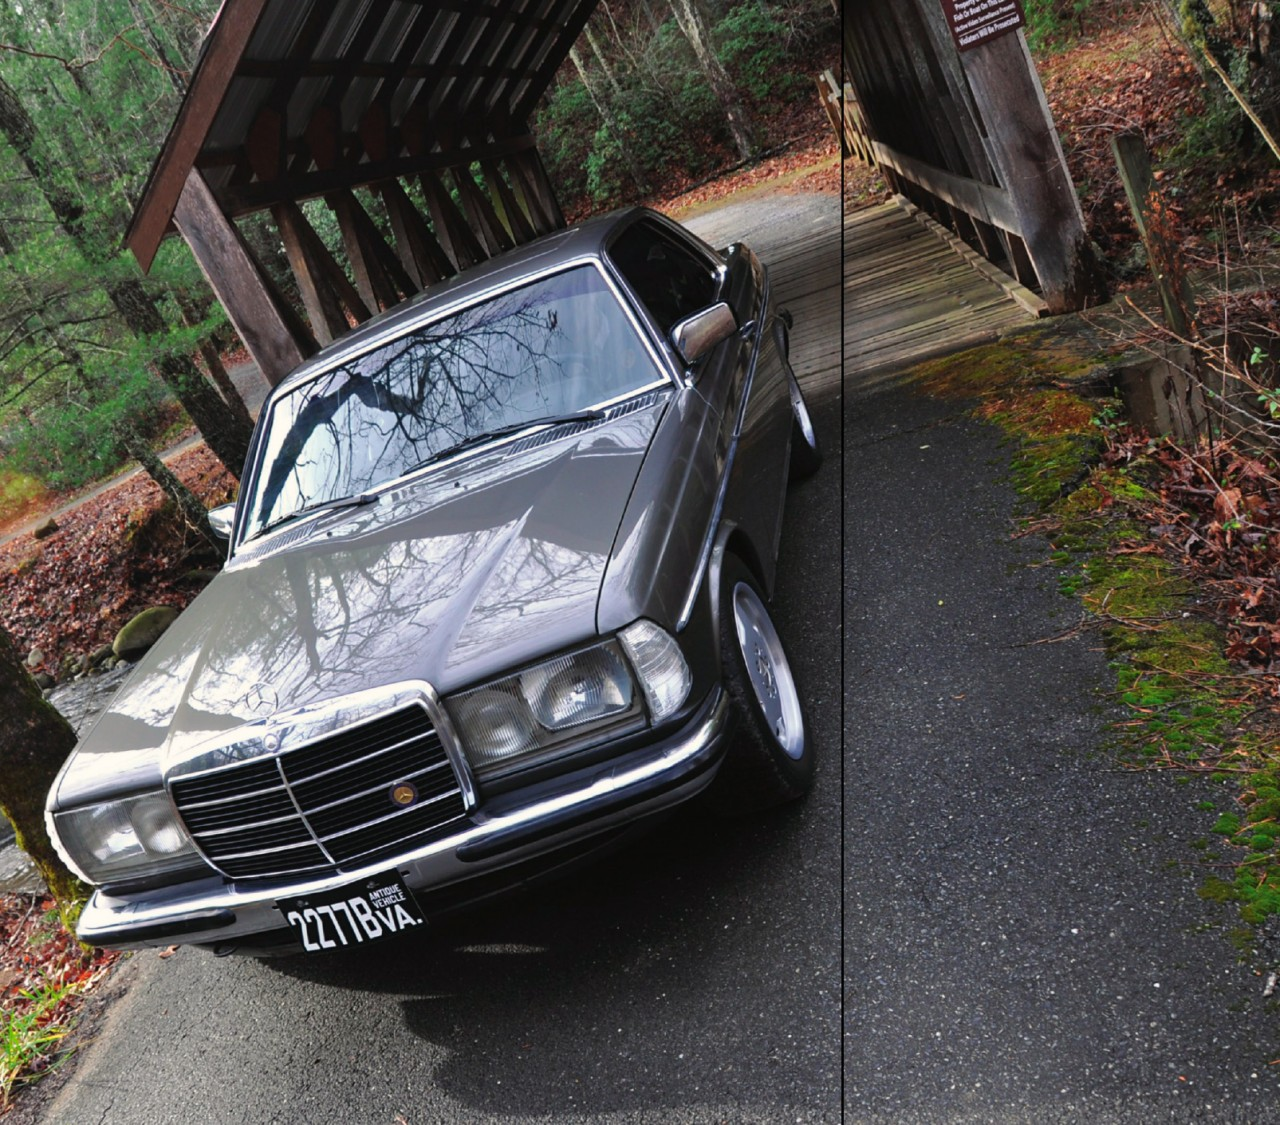 1983 mercedes benz c123 m117 v8 drive my blogs drive for Mercedes benz c123 for sale